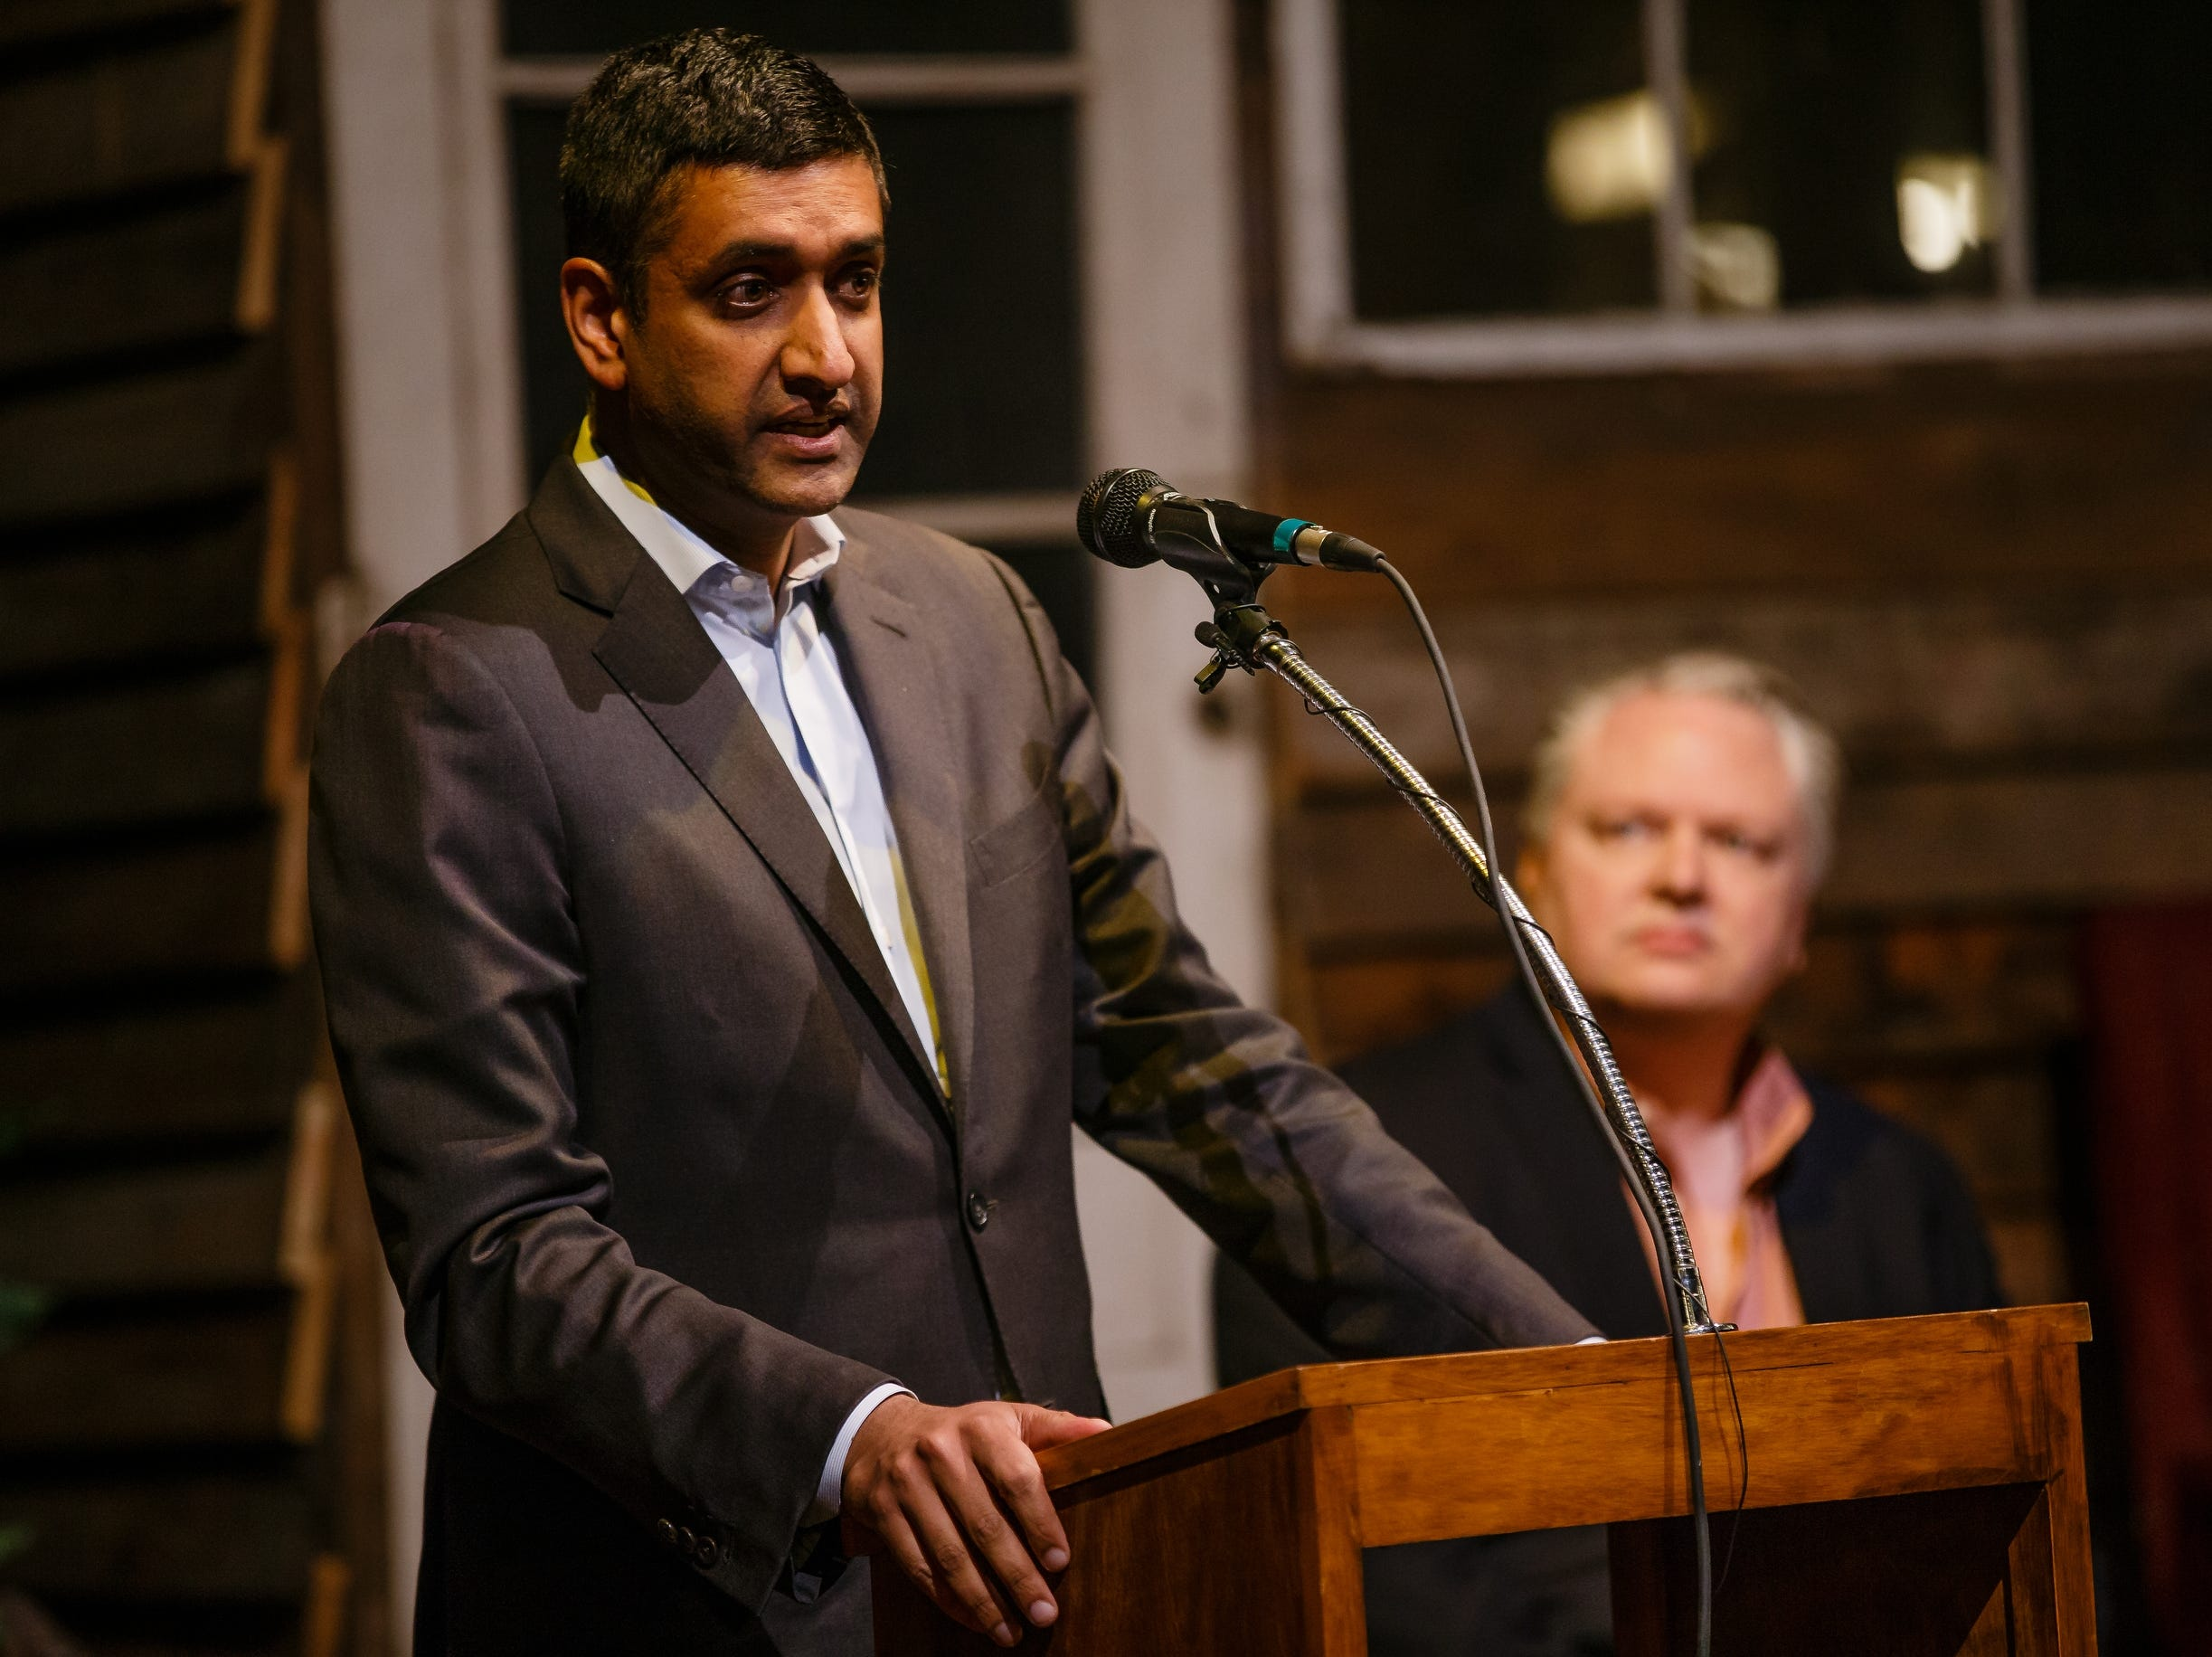 U.S. Rep. Ro Khanna speaks at the History Boy Theater on Saturday, Dec. 8, 2018, in Jefferson as tech leaders from Silicon Valley announce partnerships with Pillar Technology in an effort to bring rural jobs to Iowa. What's in it for them? Tech companies need talented workers and lower-cost space outside the East and West coasts, and this initiative could help provide a solution.